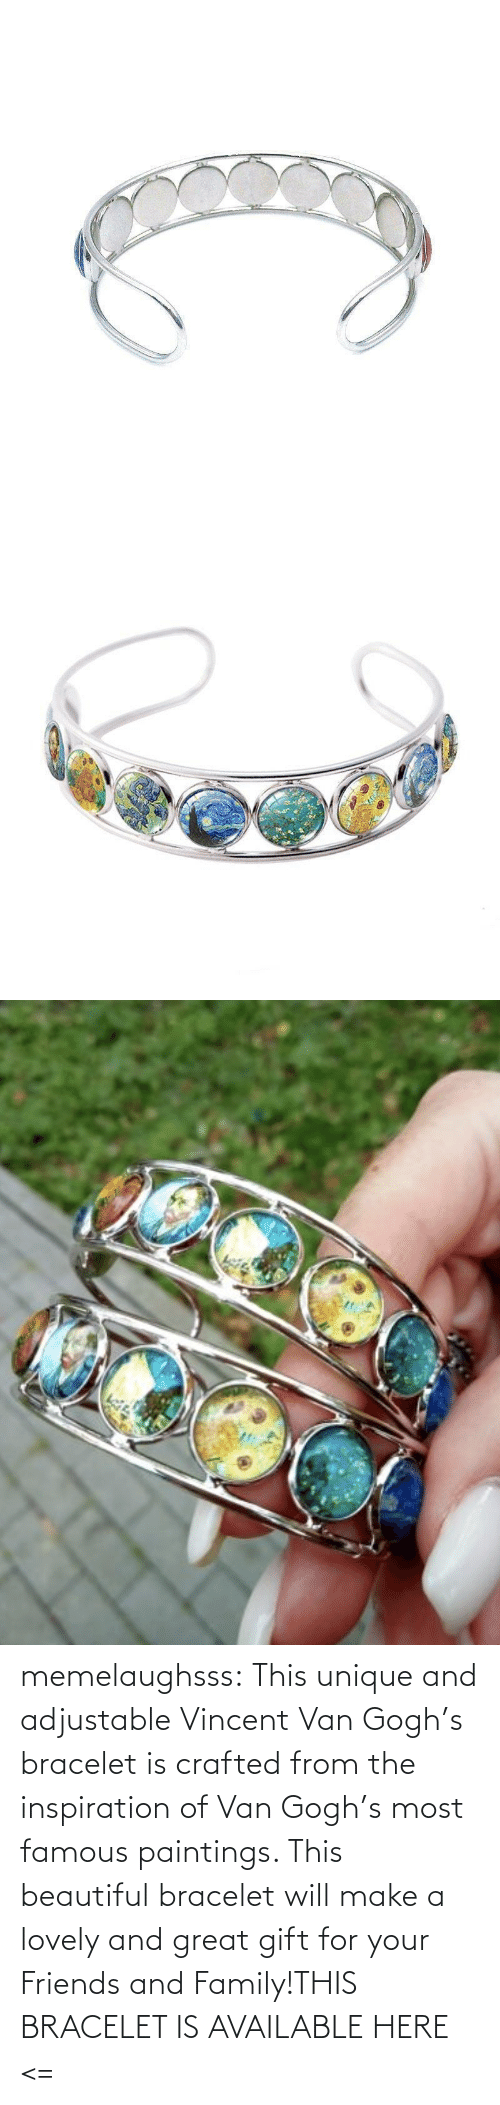 van gogh: memelaughsss:  This unique and adjustable Vincent Van Gogh's bracelet is crafted from the inspiration of Van Gogh's most famous paintings. This beautiful bracelet will make a lovely and great gift for your Friends and Family!THIS BRACELET IS AVAILABLE HERE <=